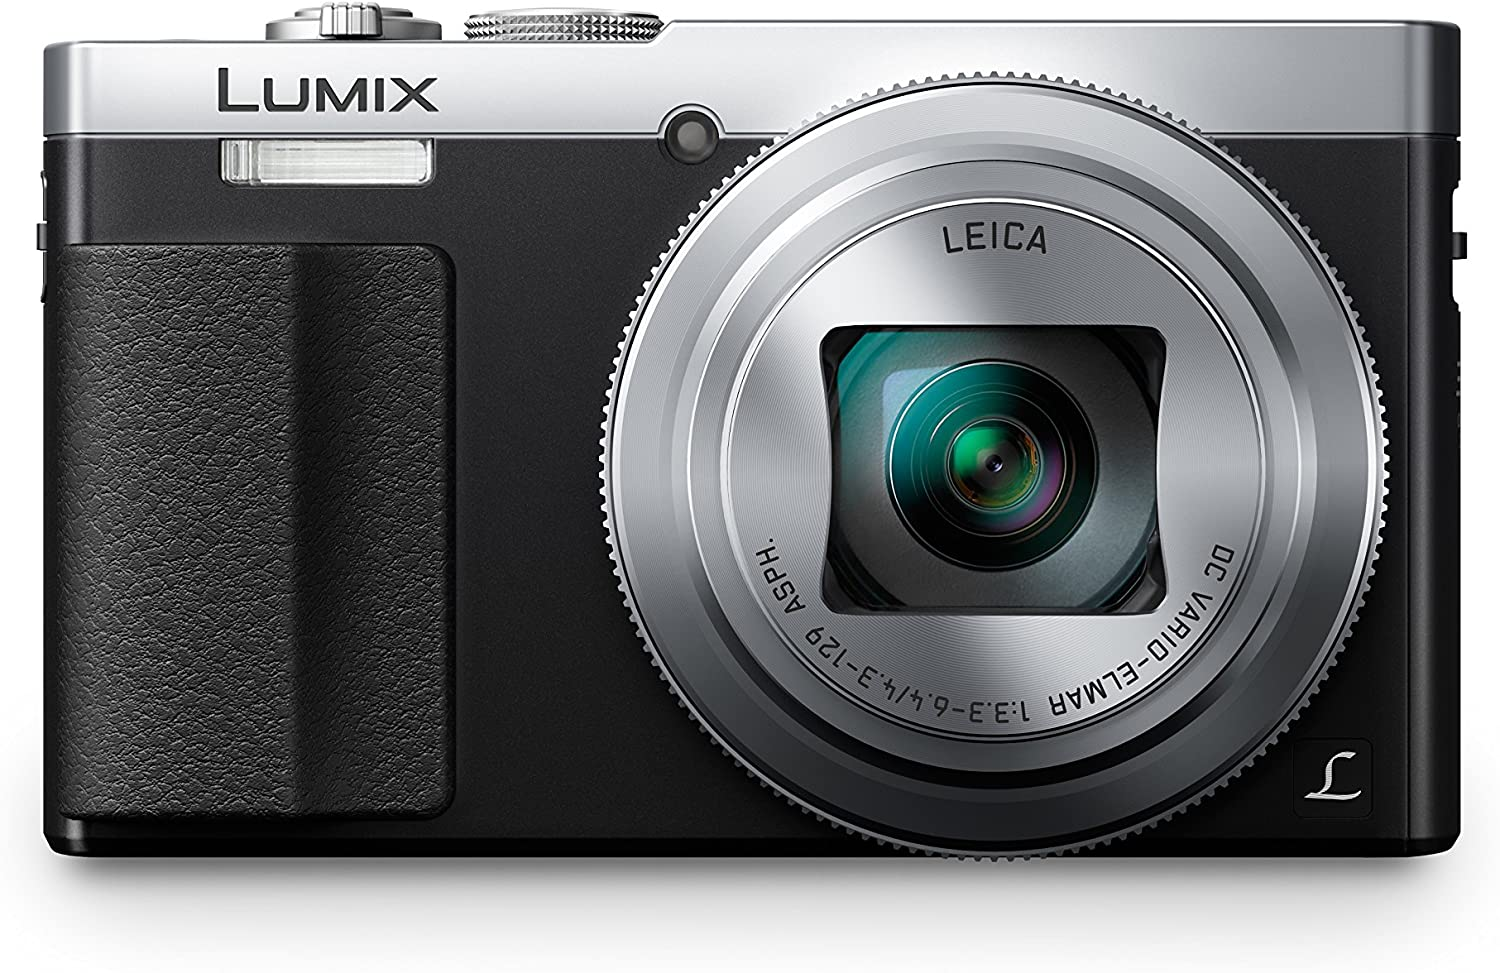 Panasonic Lumix DC-TZ70 - Cámara Compacta de 12,1 MP (Super Zoom, Objetivo F3.3-F6.4 de 24-720mm, Zoom de 30X, Estabilizador Óptico, FHD, WiFi, Raw), Color Plata